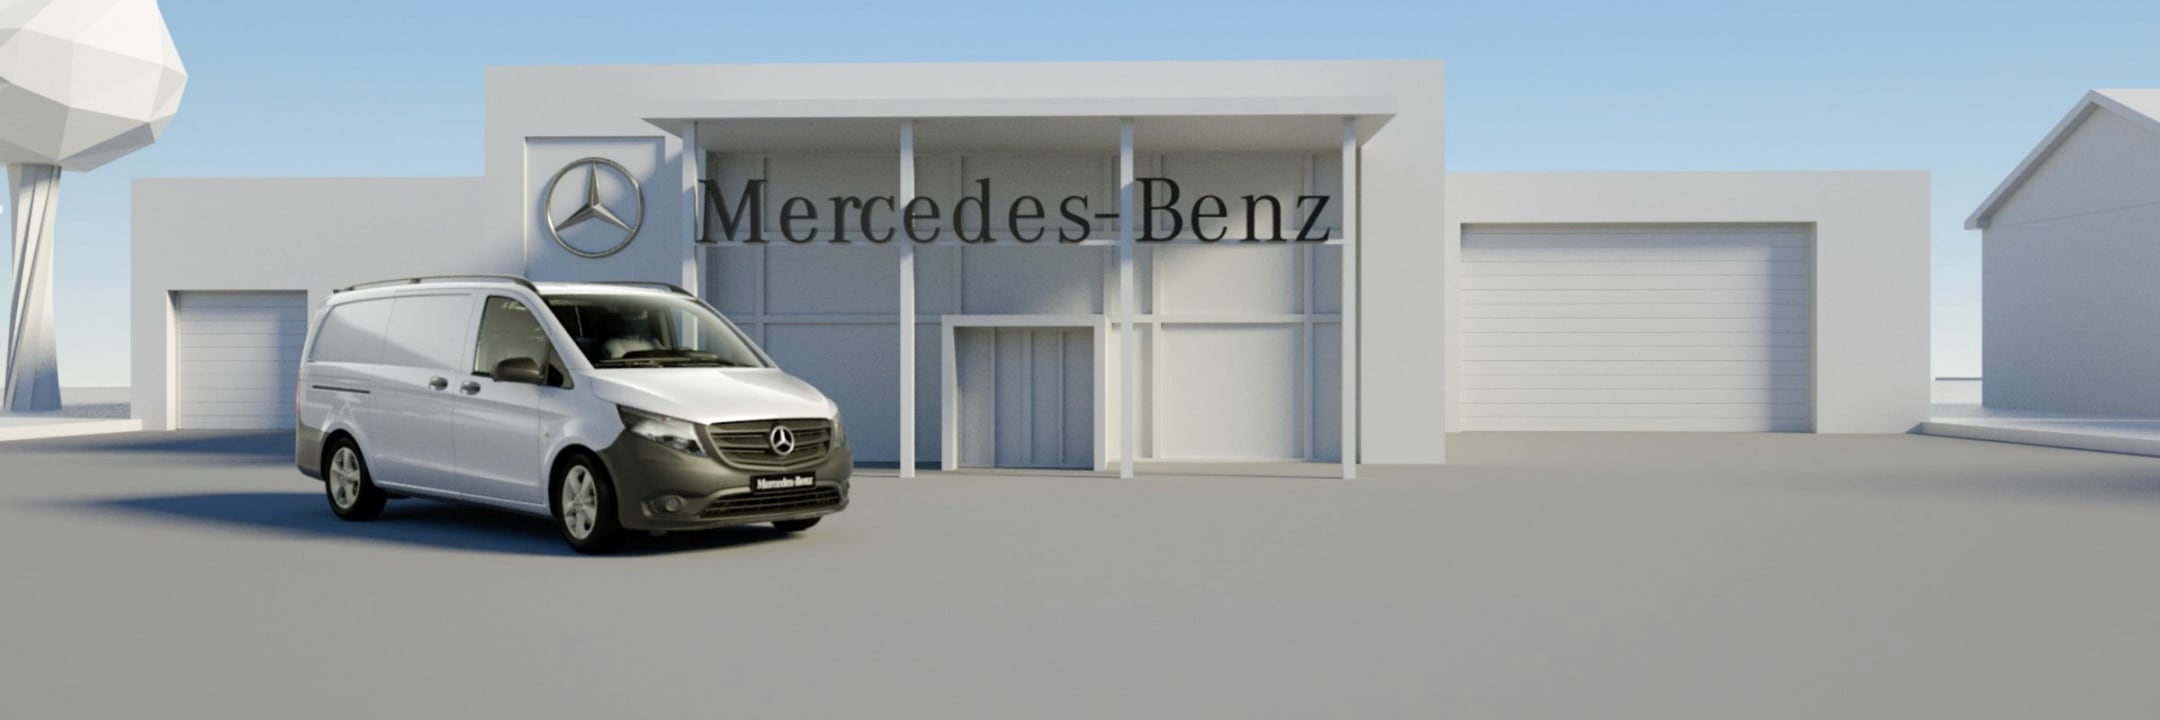 Vans, WLPT and RDE, Mercedes-Benz transition phase to WLTP